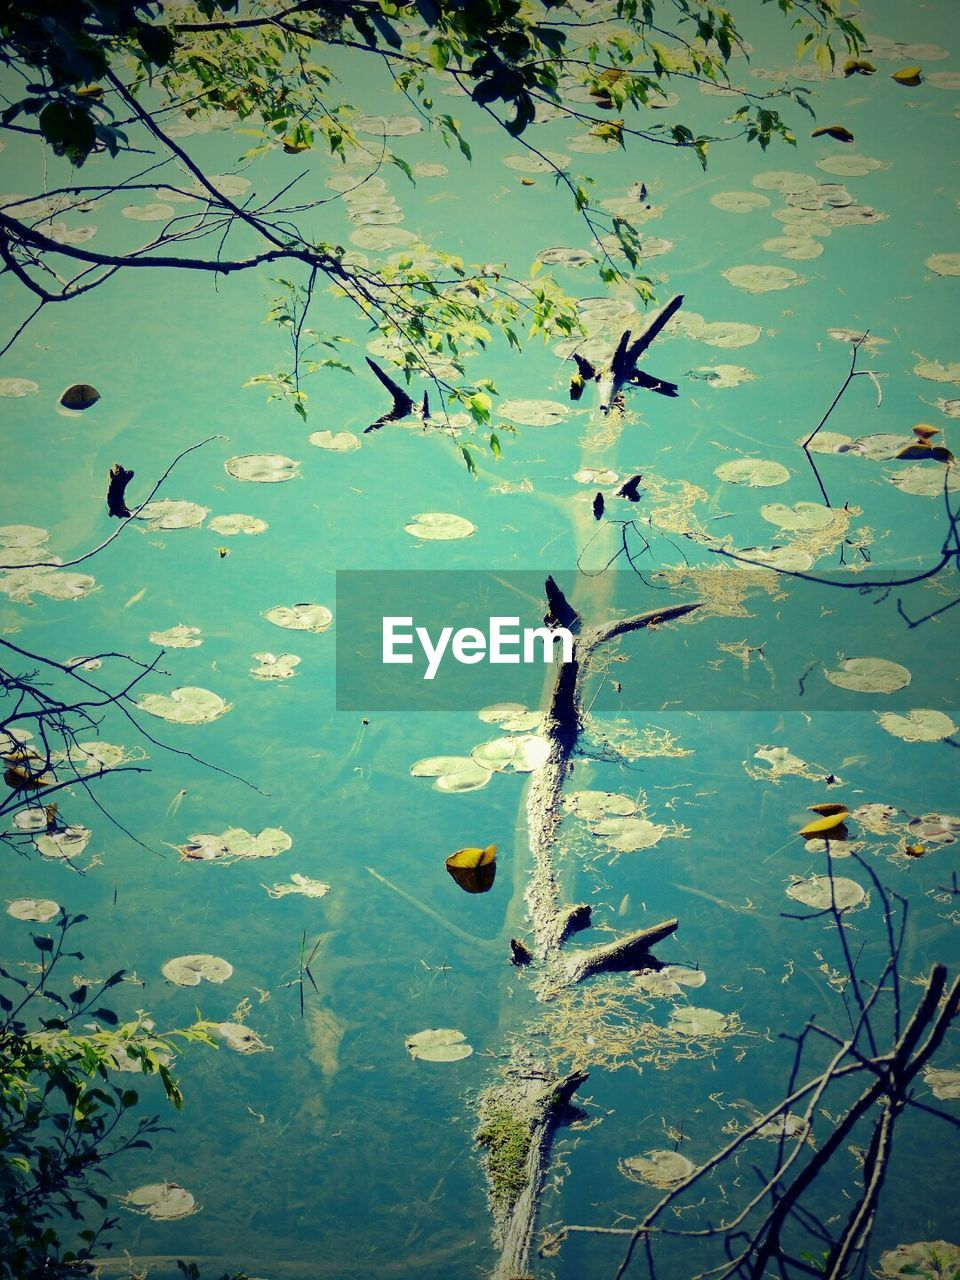 water, nature, lake, leaf, beauty in nature, growth, branch, no people, day, flower, outdoors, floating on water, tree, animals in the wild, plant, animal themes, lily pad, freshness, close-up, bird